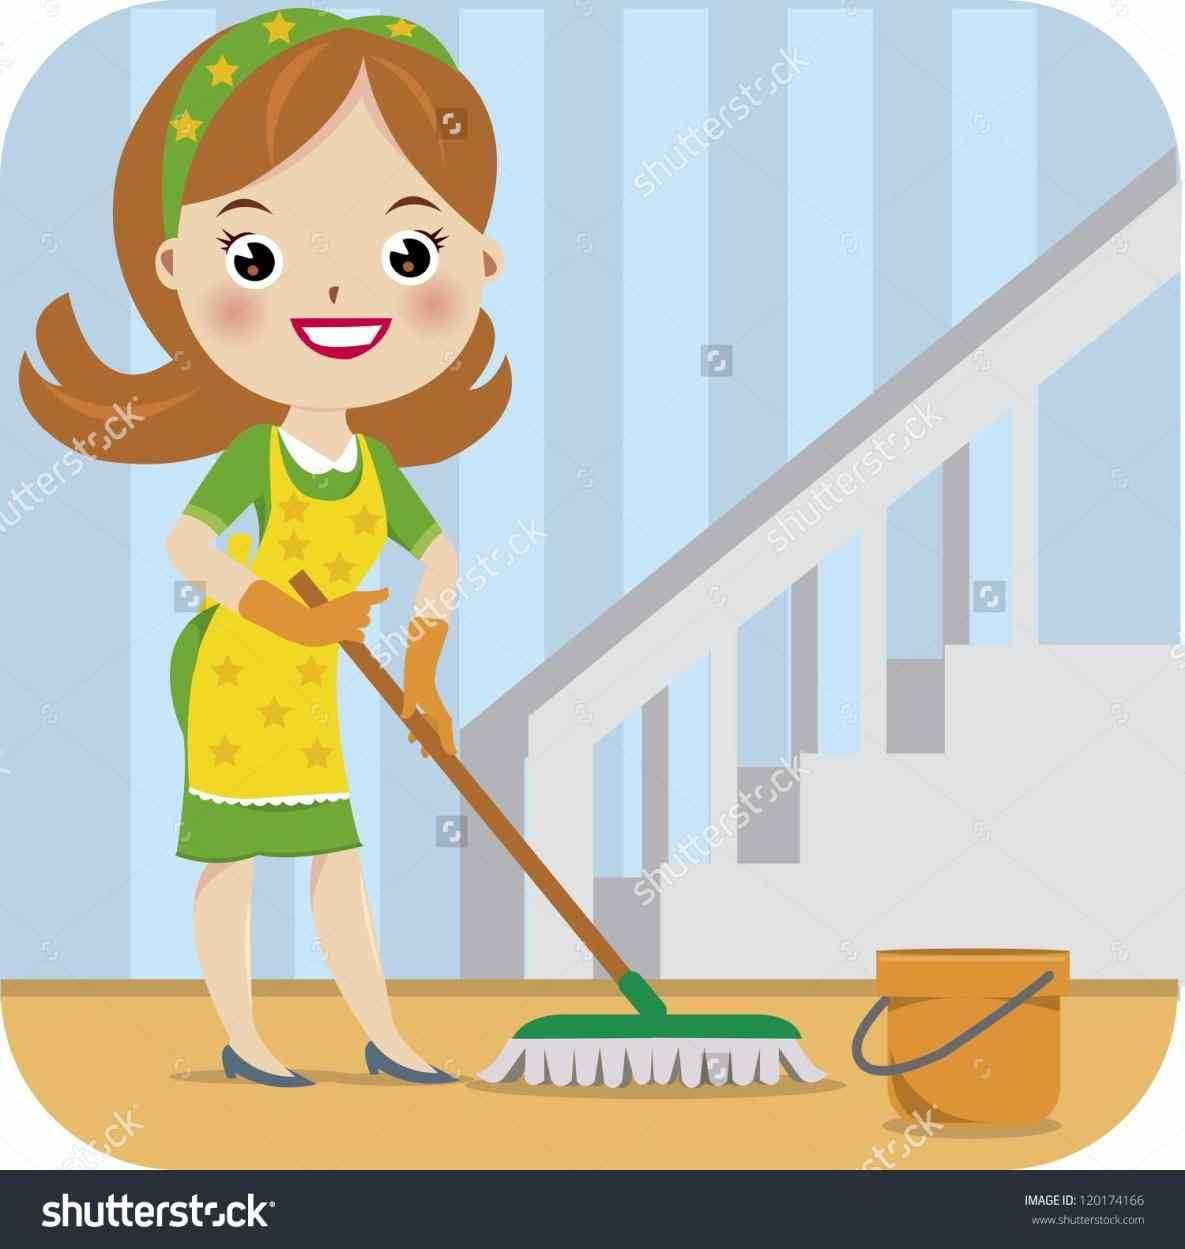 Cleaning house clipart 4 » Clipart Station.